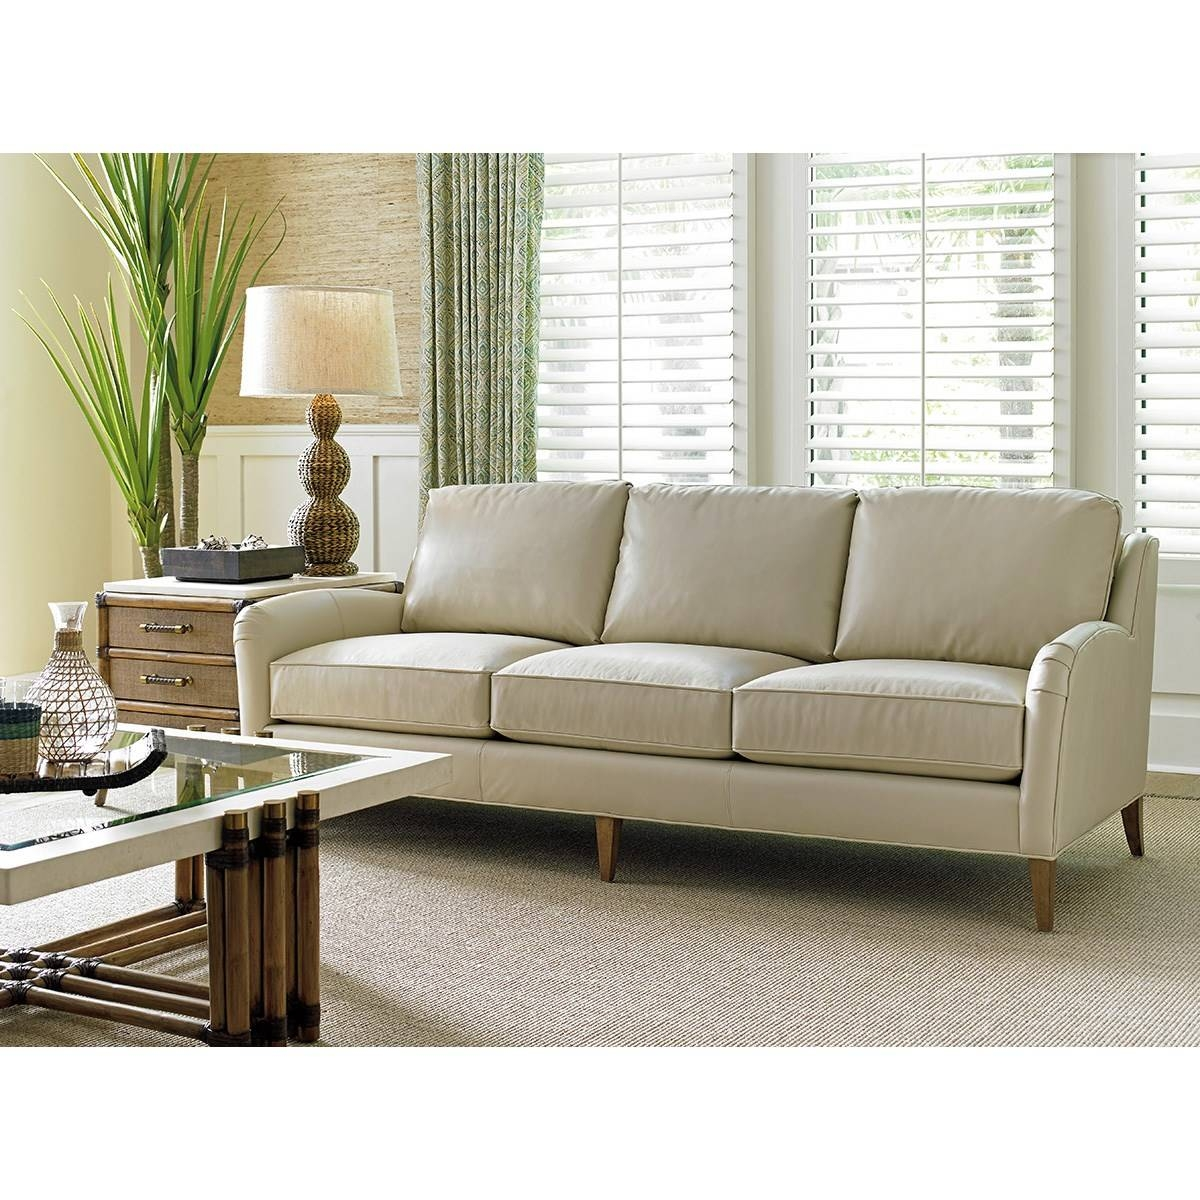 Tommy Bahama 01-Ll7287-33-52 Twin Palms Coconut Grove Leather Sofa regarding Ivory Leather Sofas (Image 27 of 30)